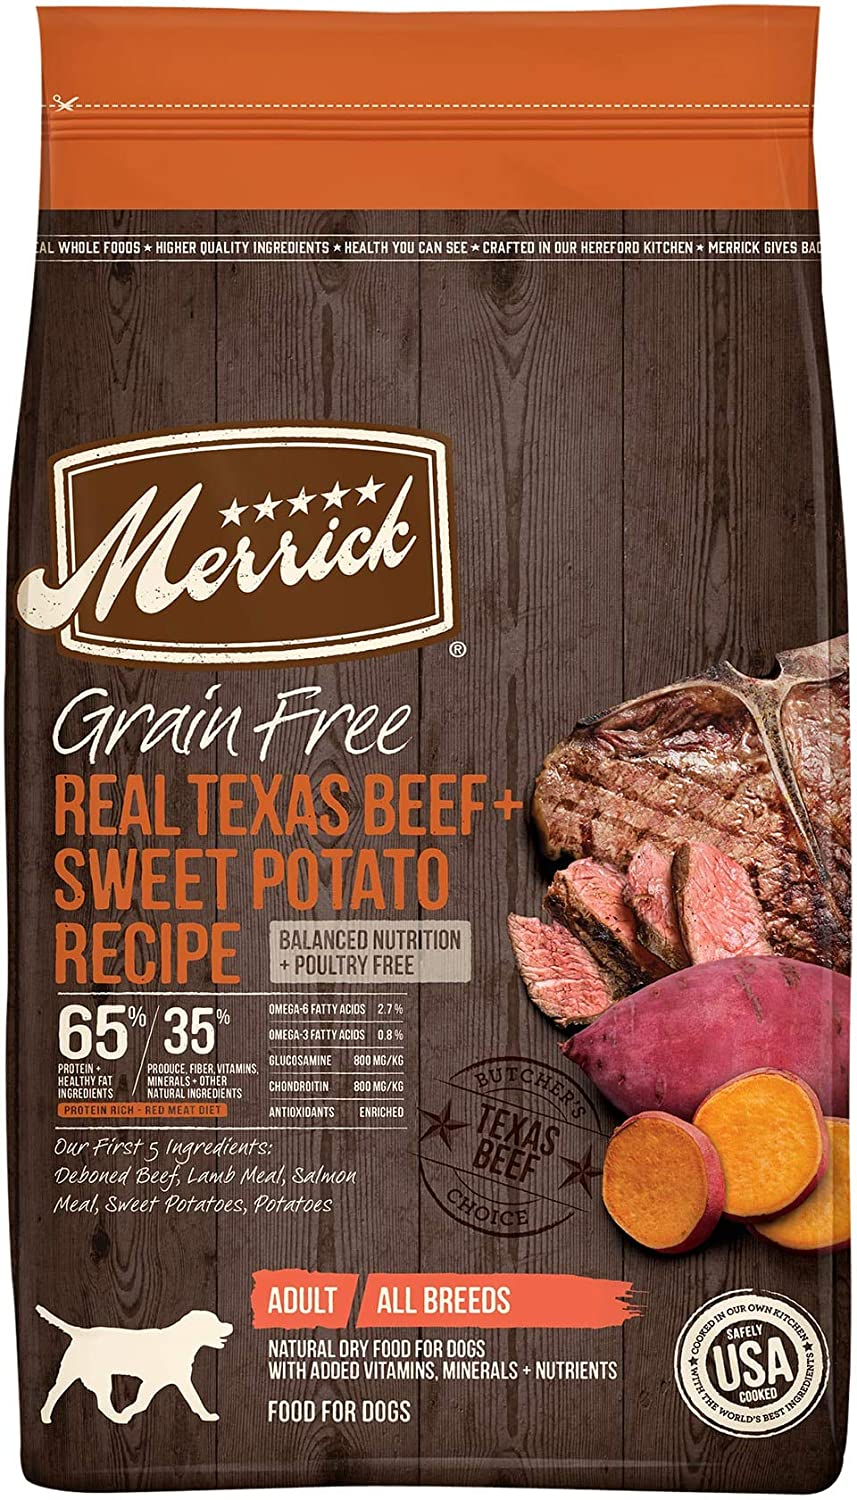 Merrick Grain Free Texas Beef + Sweet Potato Recipe Dry Dog Food, 4 lbs.